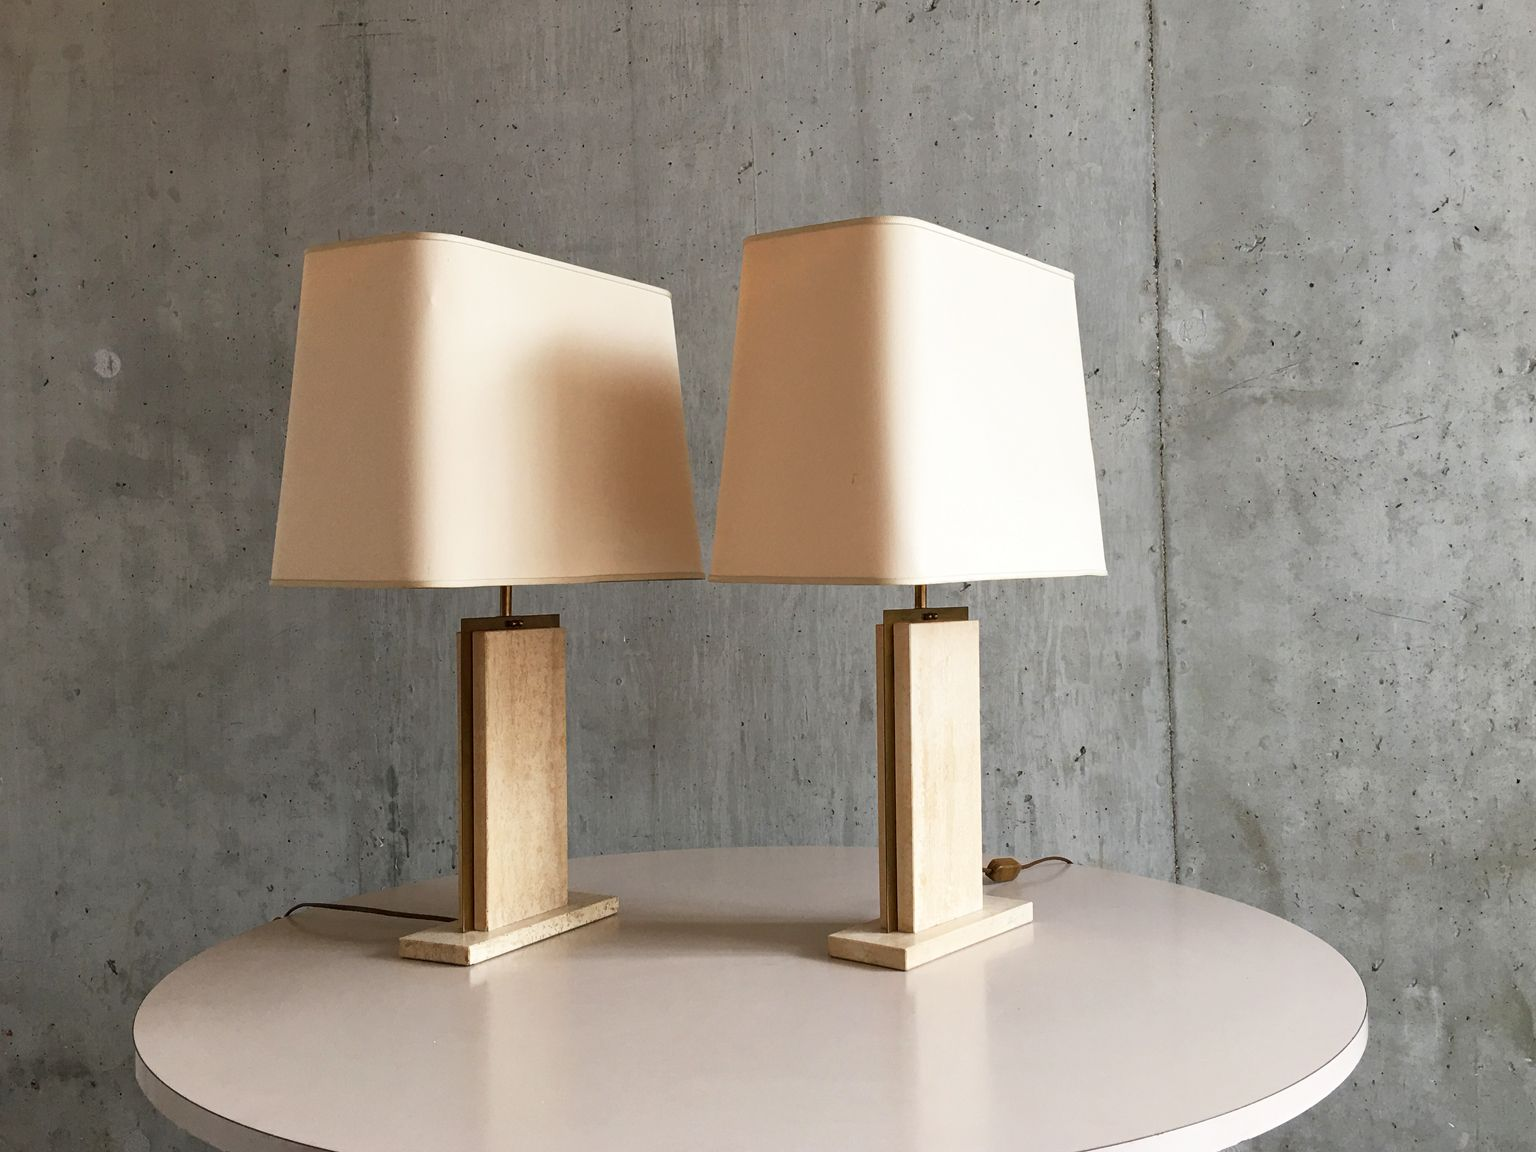 Amazing Belgian Travertine Marble Lamps By Camille Breesch, 1970s, Set Of 2 For  Sale At Pamono